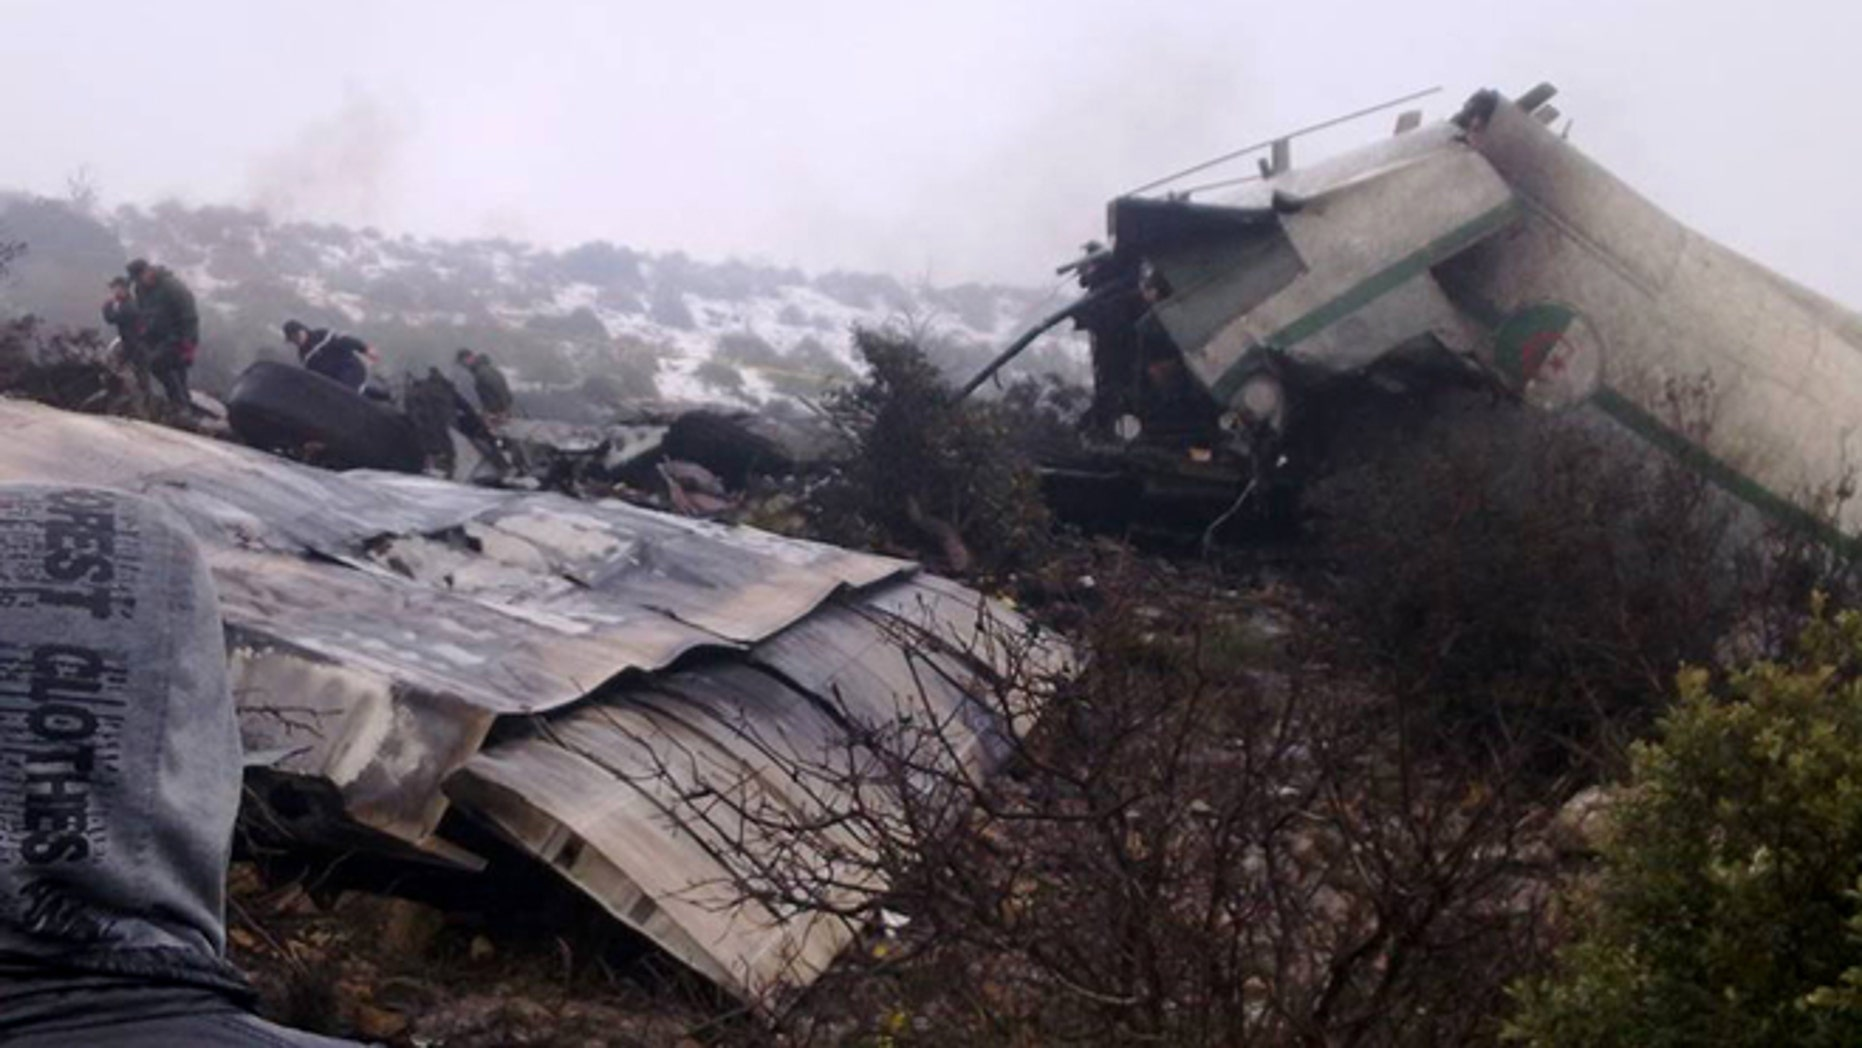 Feb. 11, 2014: A man watches rescue workers working at the wreckage of Algerian military transport aircraft after it slammed into a mountain in the country's rugged eastern region.